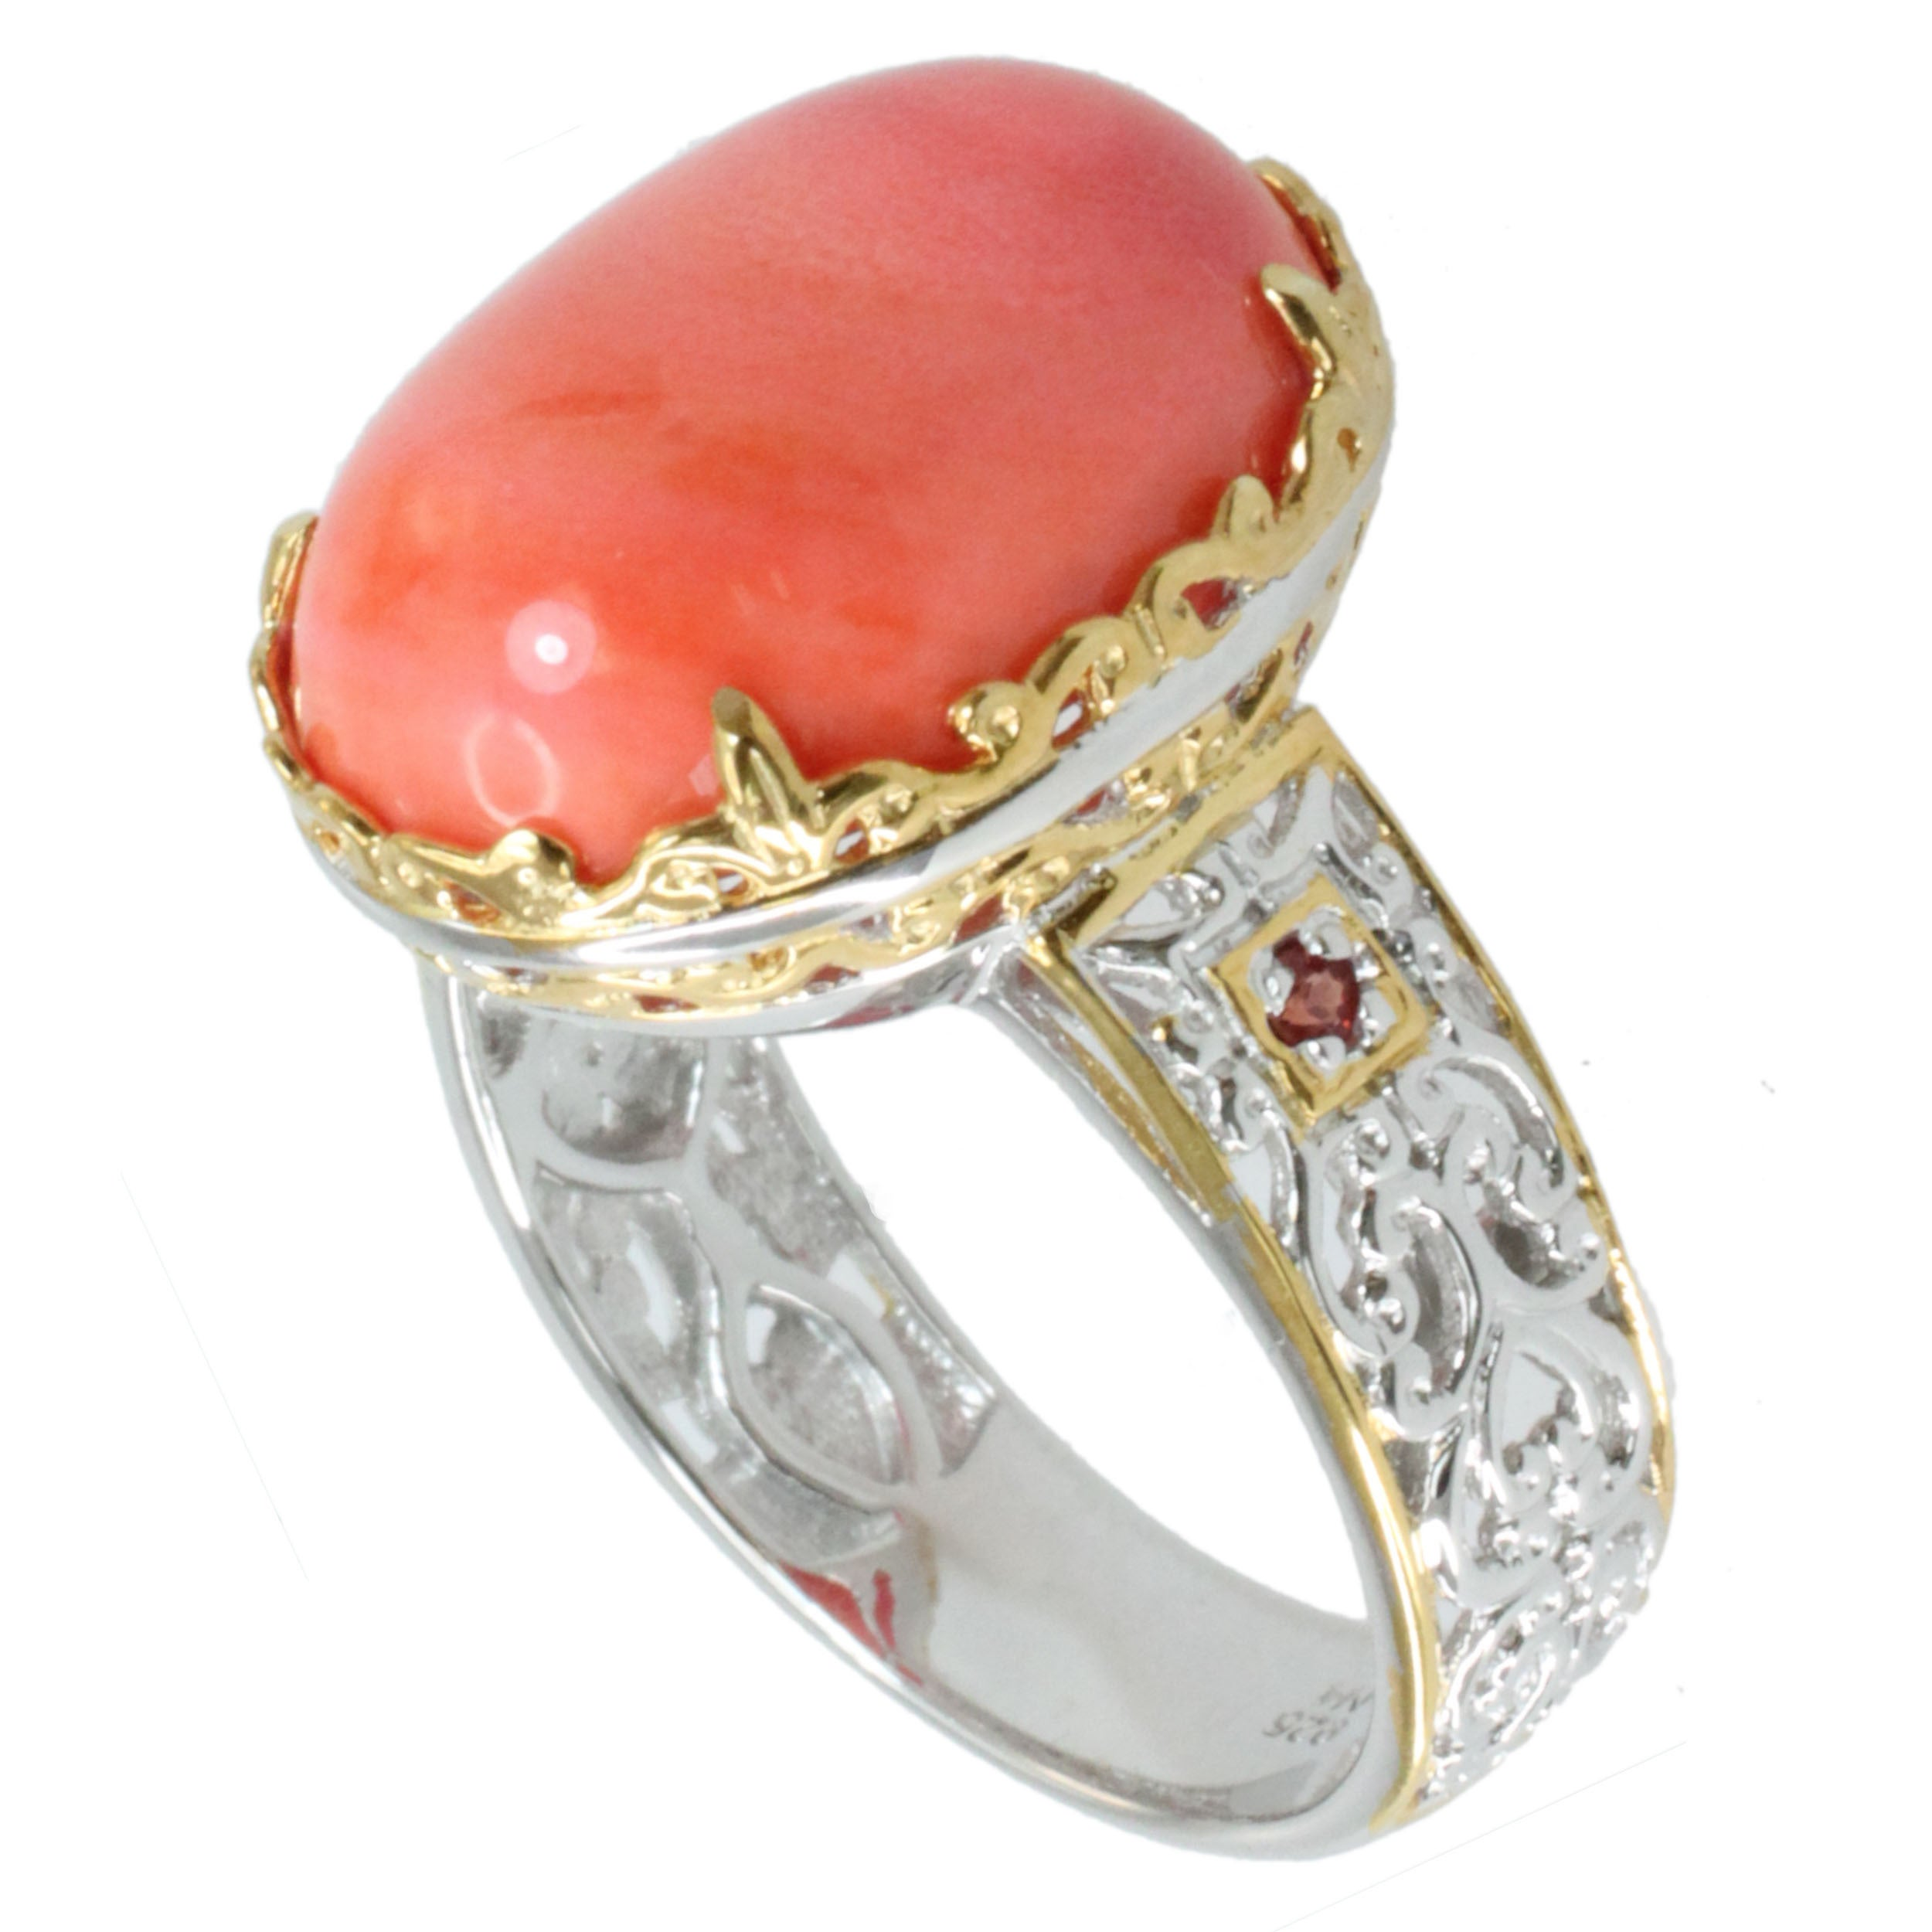 coral pomellato enlarged capri diamond ring realreal and cocktail products jewelry the rings